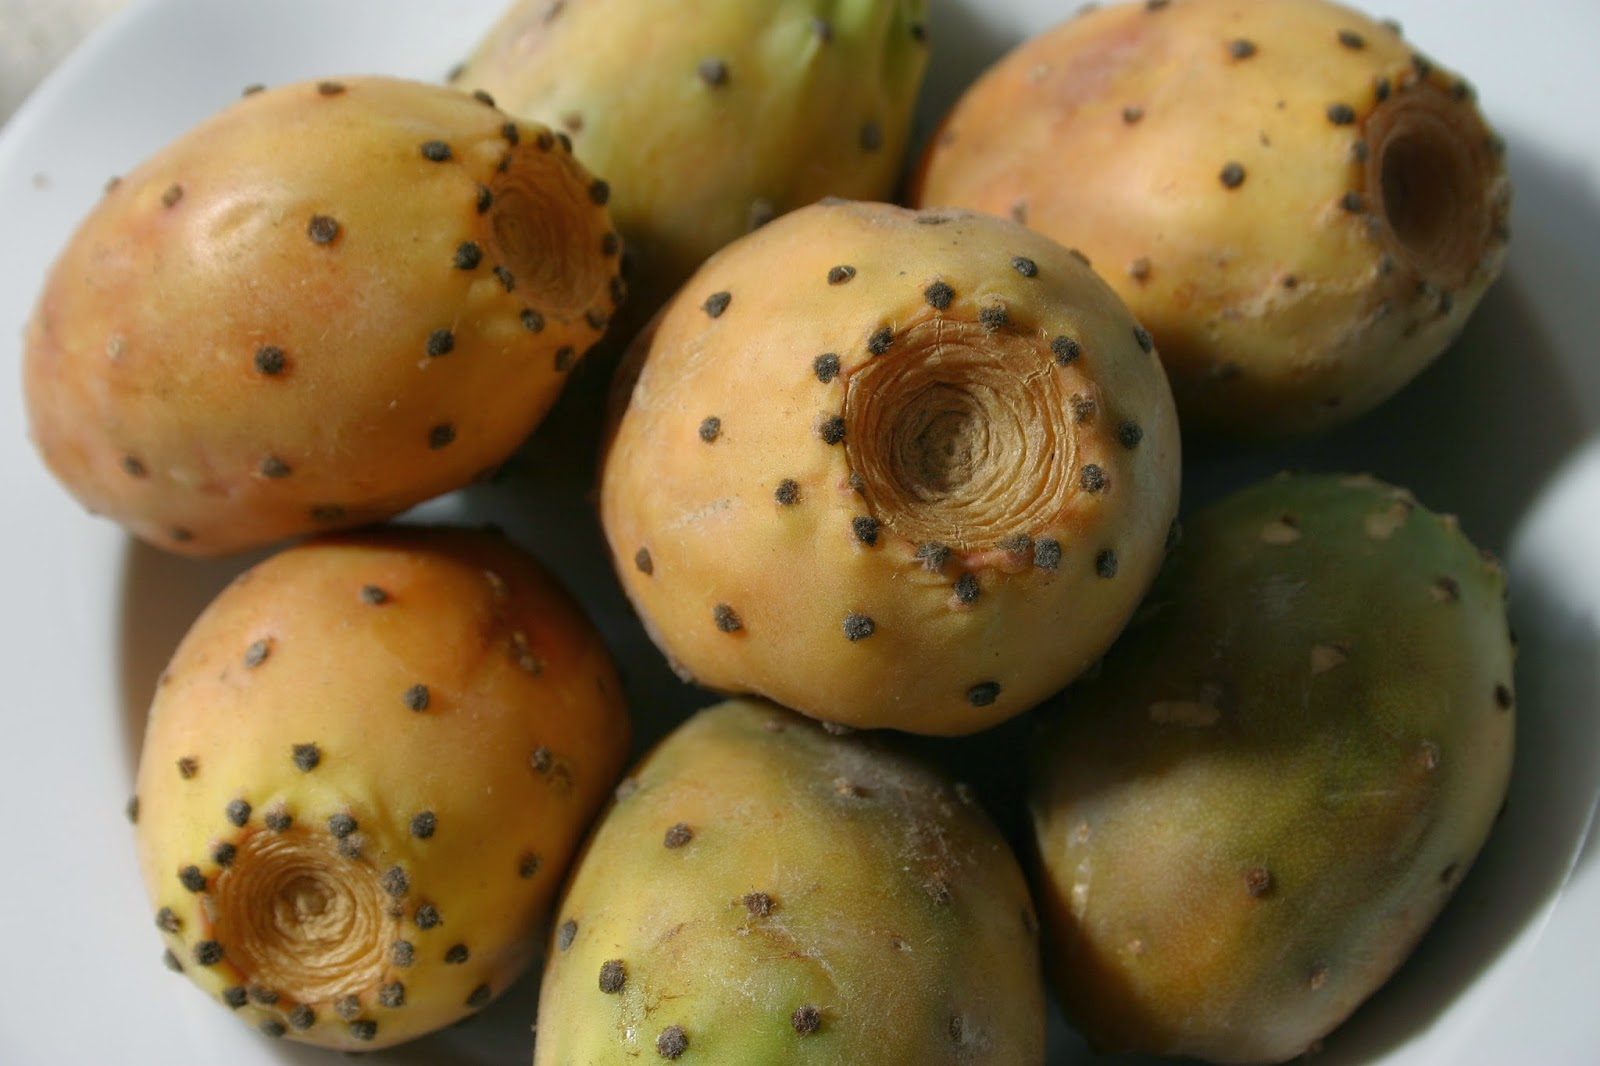 Chumbera or prickly pear, a lovely dessert option in Andalucia